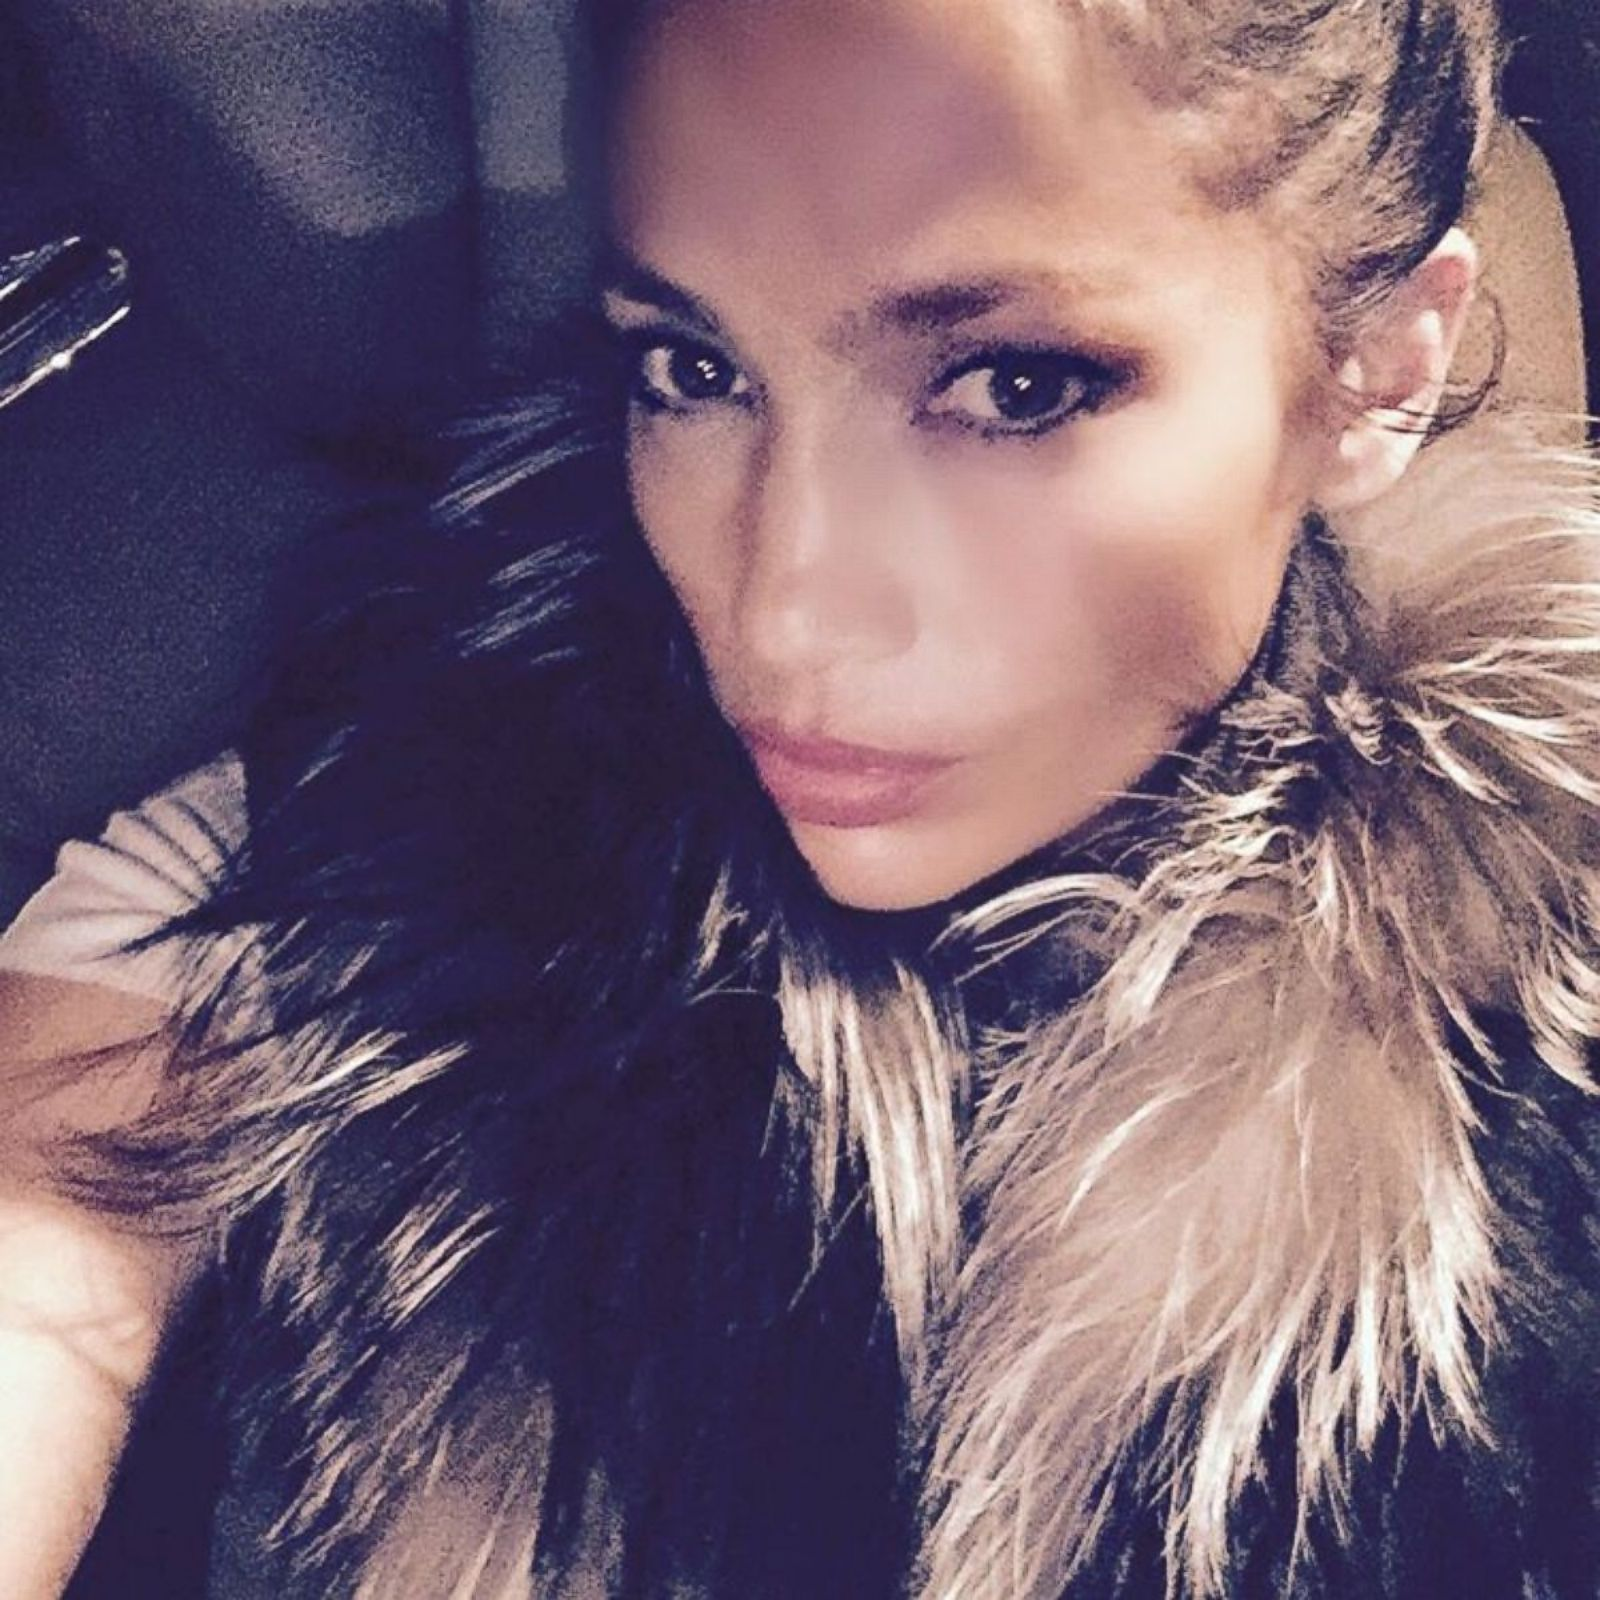 Jennifer Lopez Shares a Sultry Selfie Picture ...